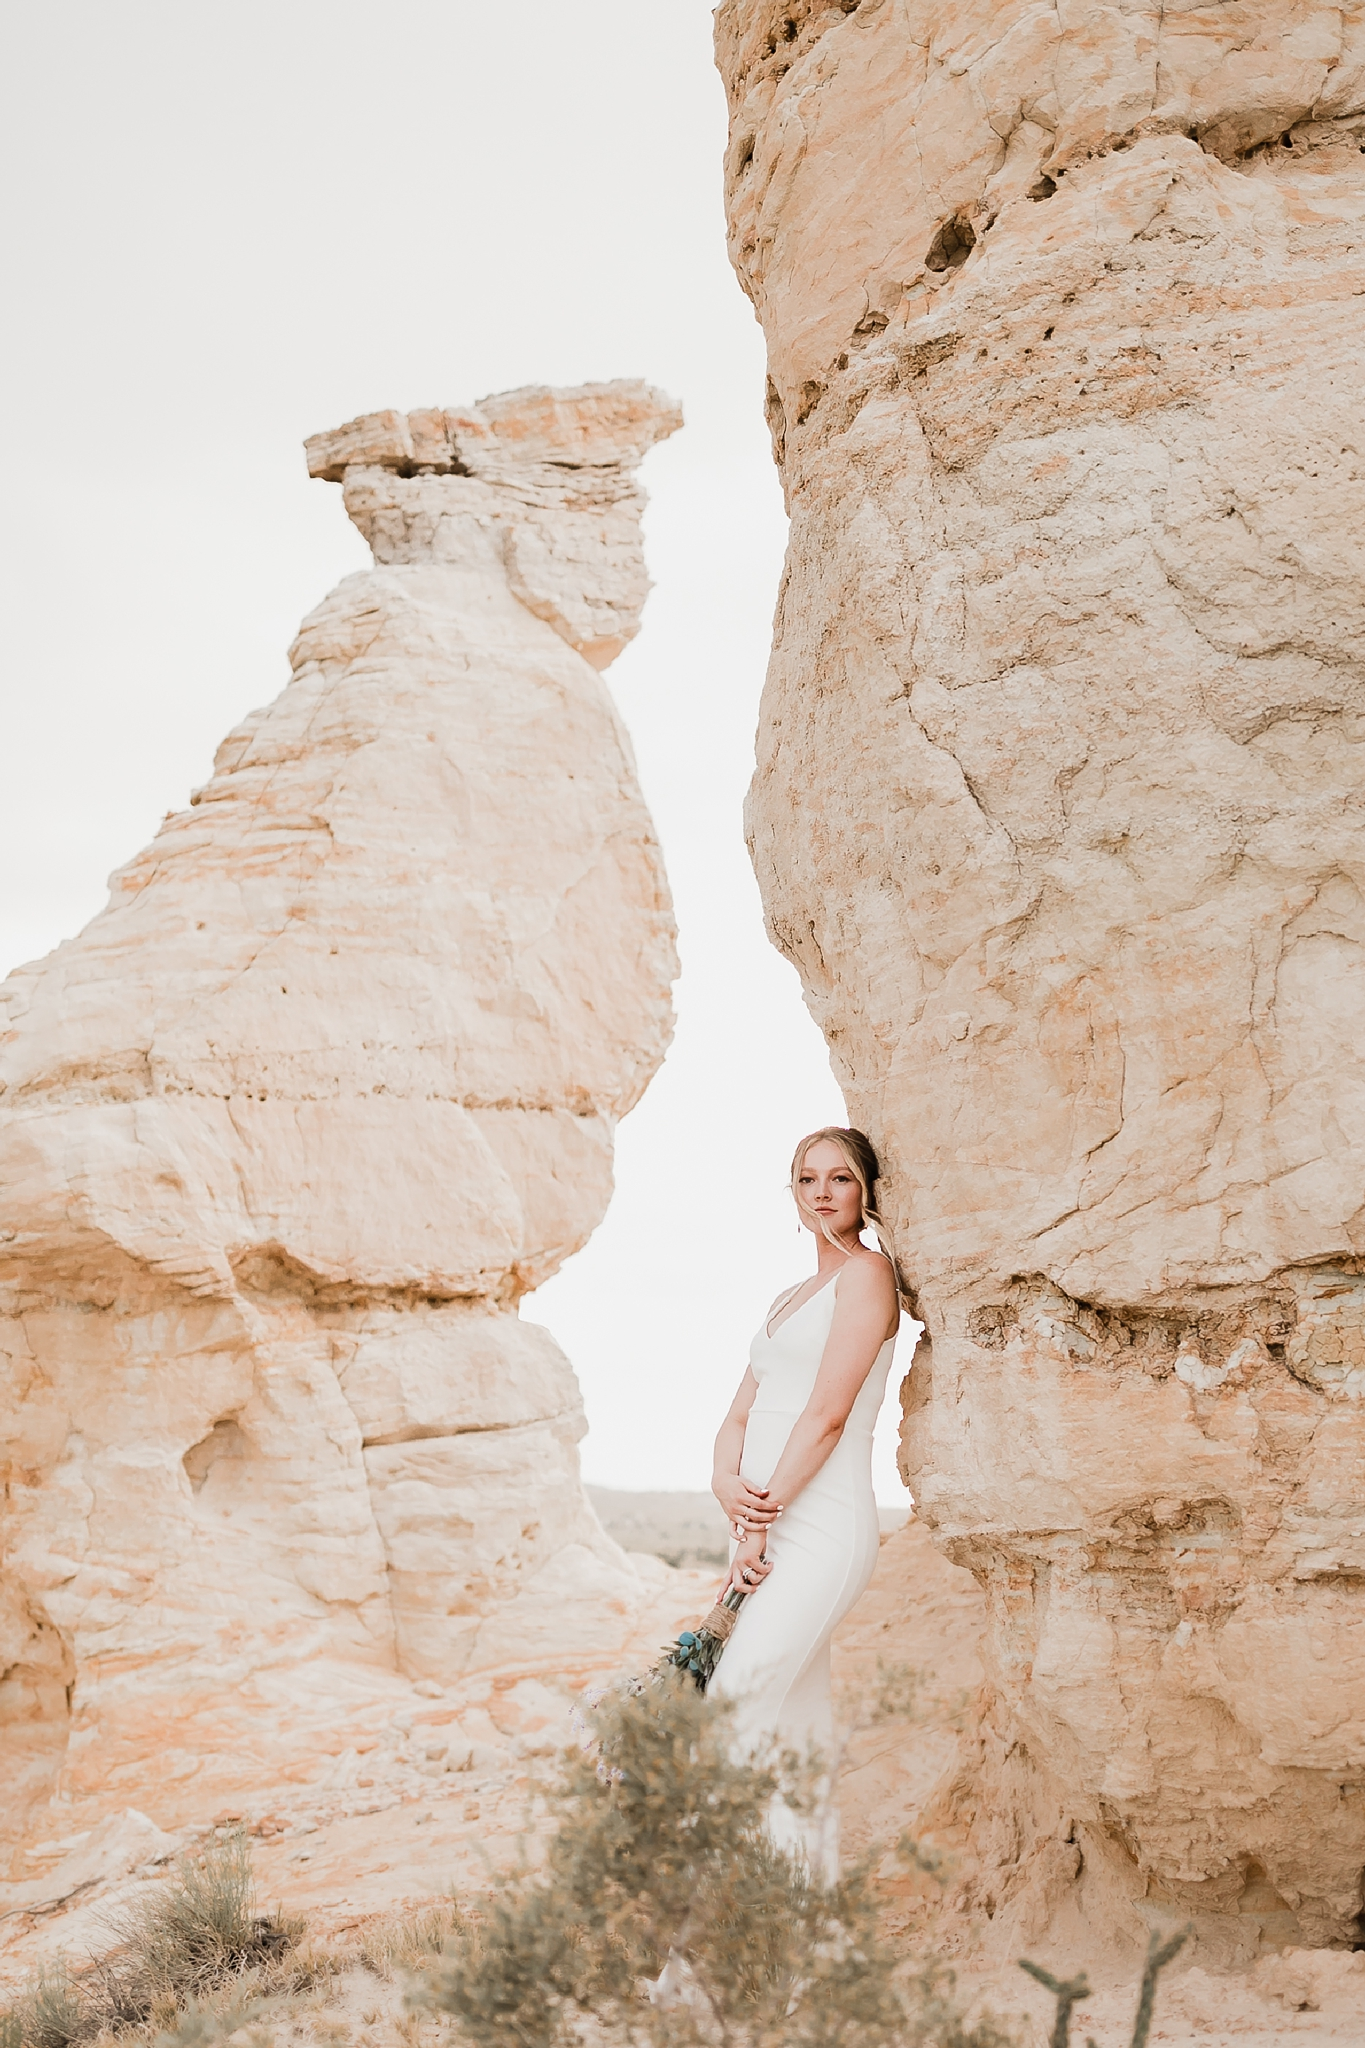 Alicia+lucia+photography+-+albuquerque+wedding+photographer+-+santa+fe+wedding+photography+-+new+mexico+wedding+photographer+-+new+mexico+wedding+-+new+mexico+elopement+-+elopment+-+mountain+elopement_0025.jpg